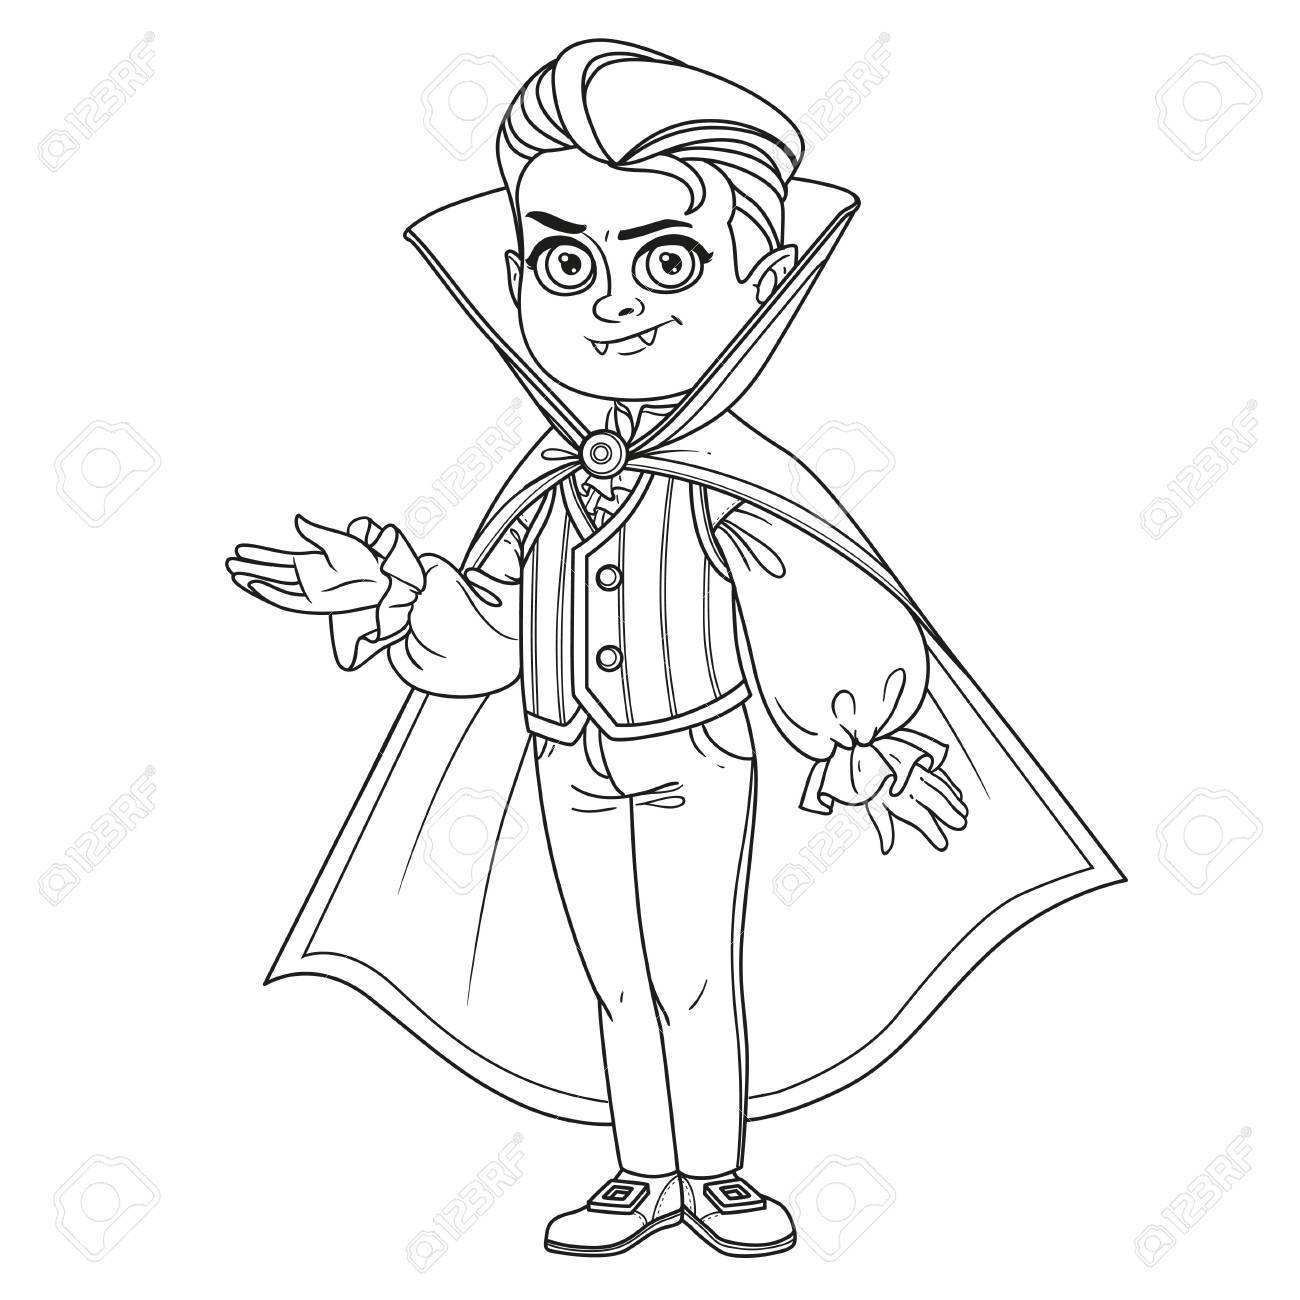 Cute Boy In Vampire Costume Outlined For Coloring Page Stock Vector